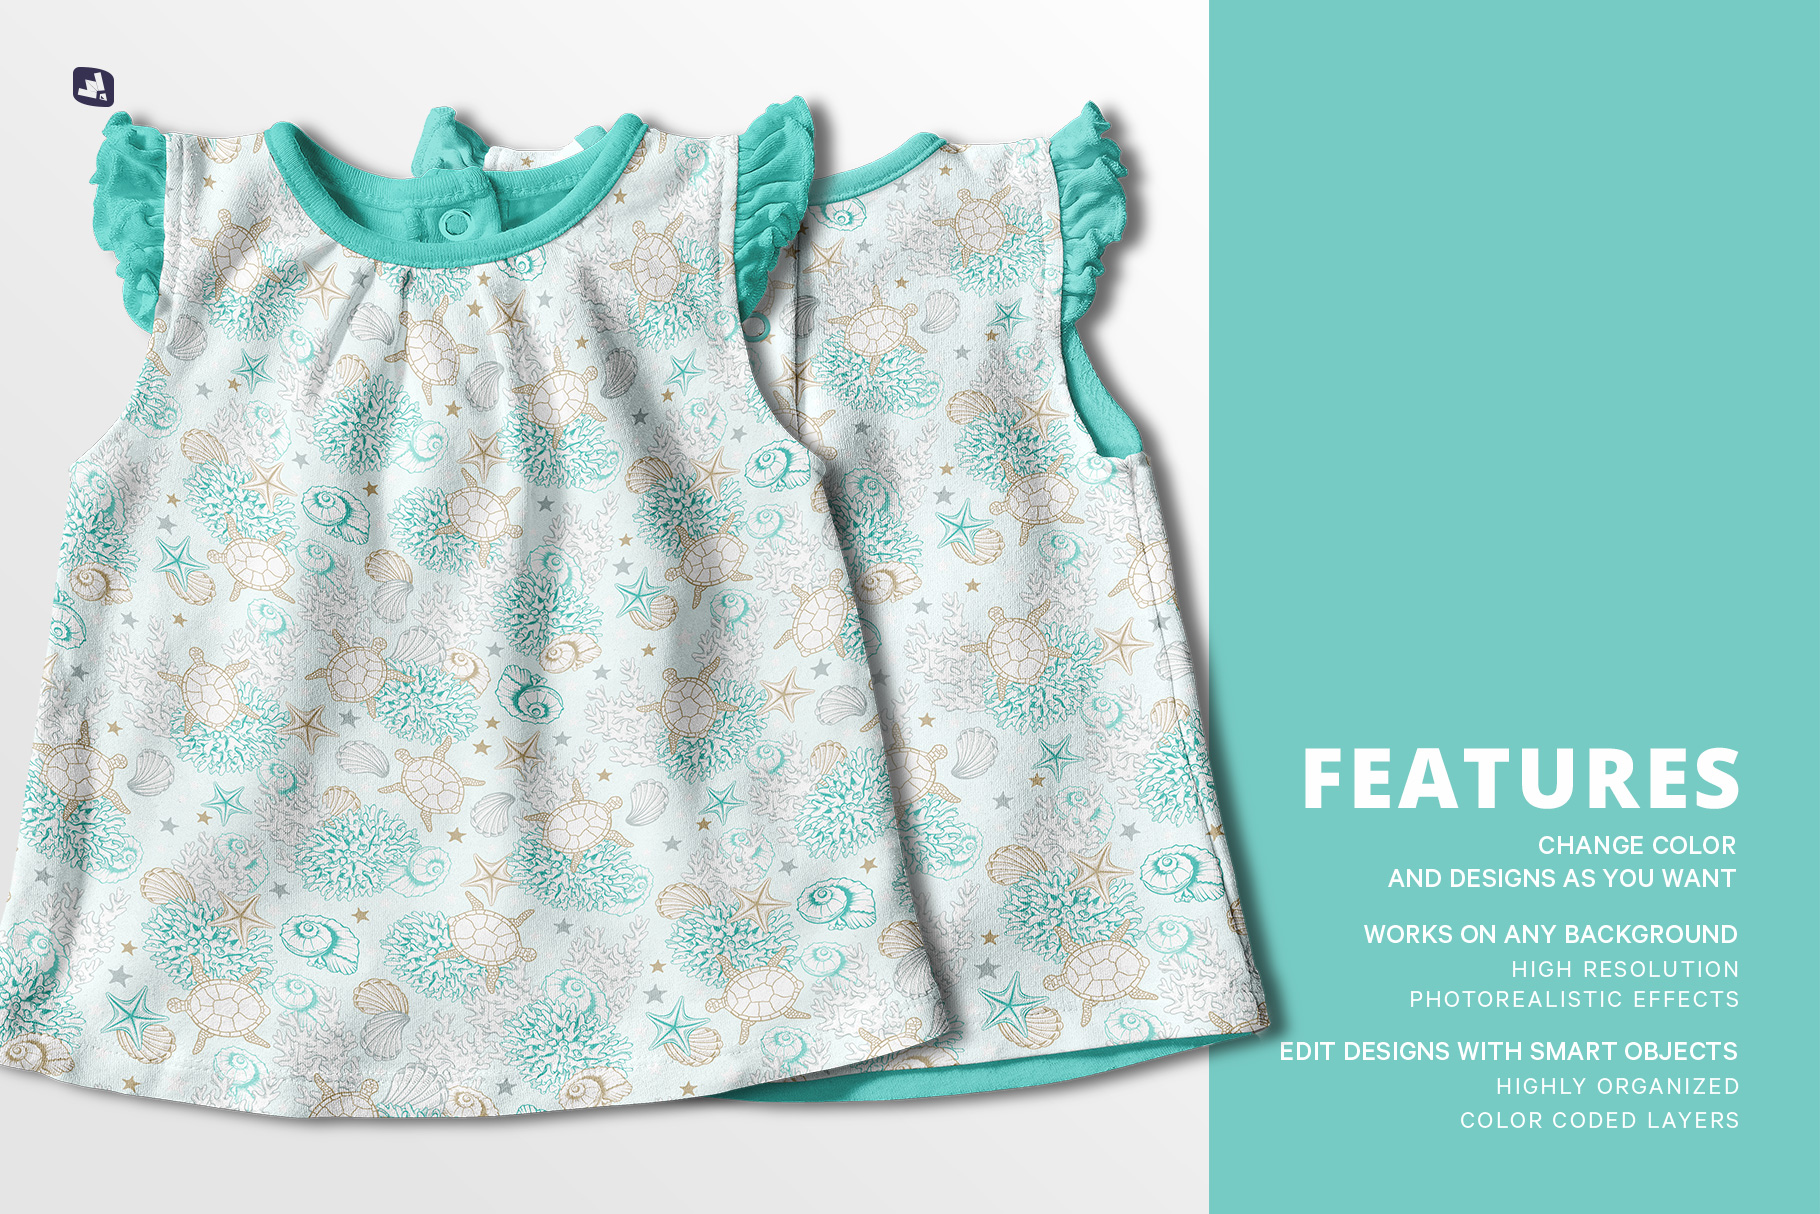 features of the ruffle sleeve baby girl top mockup